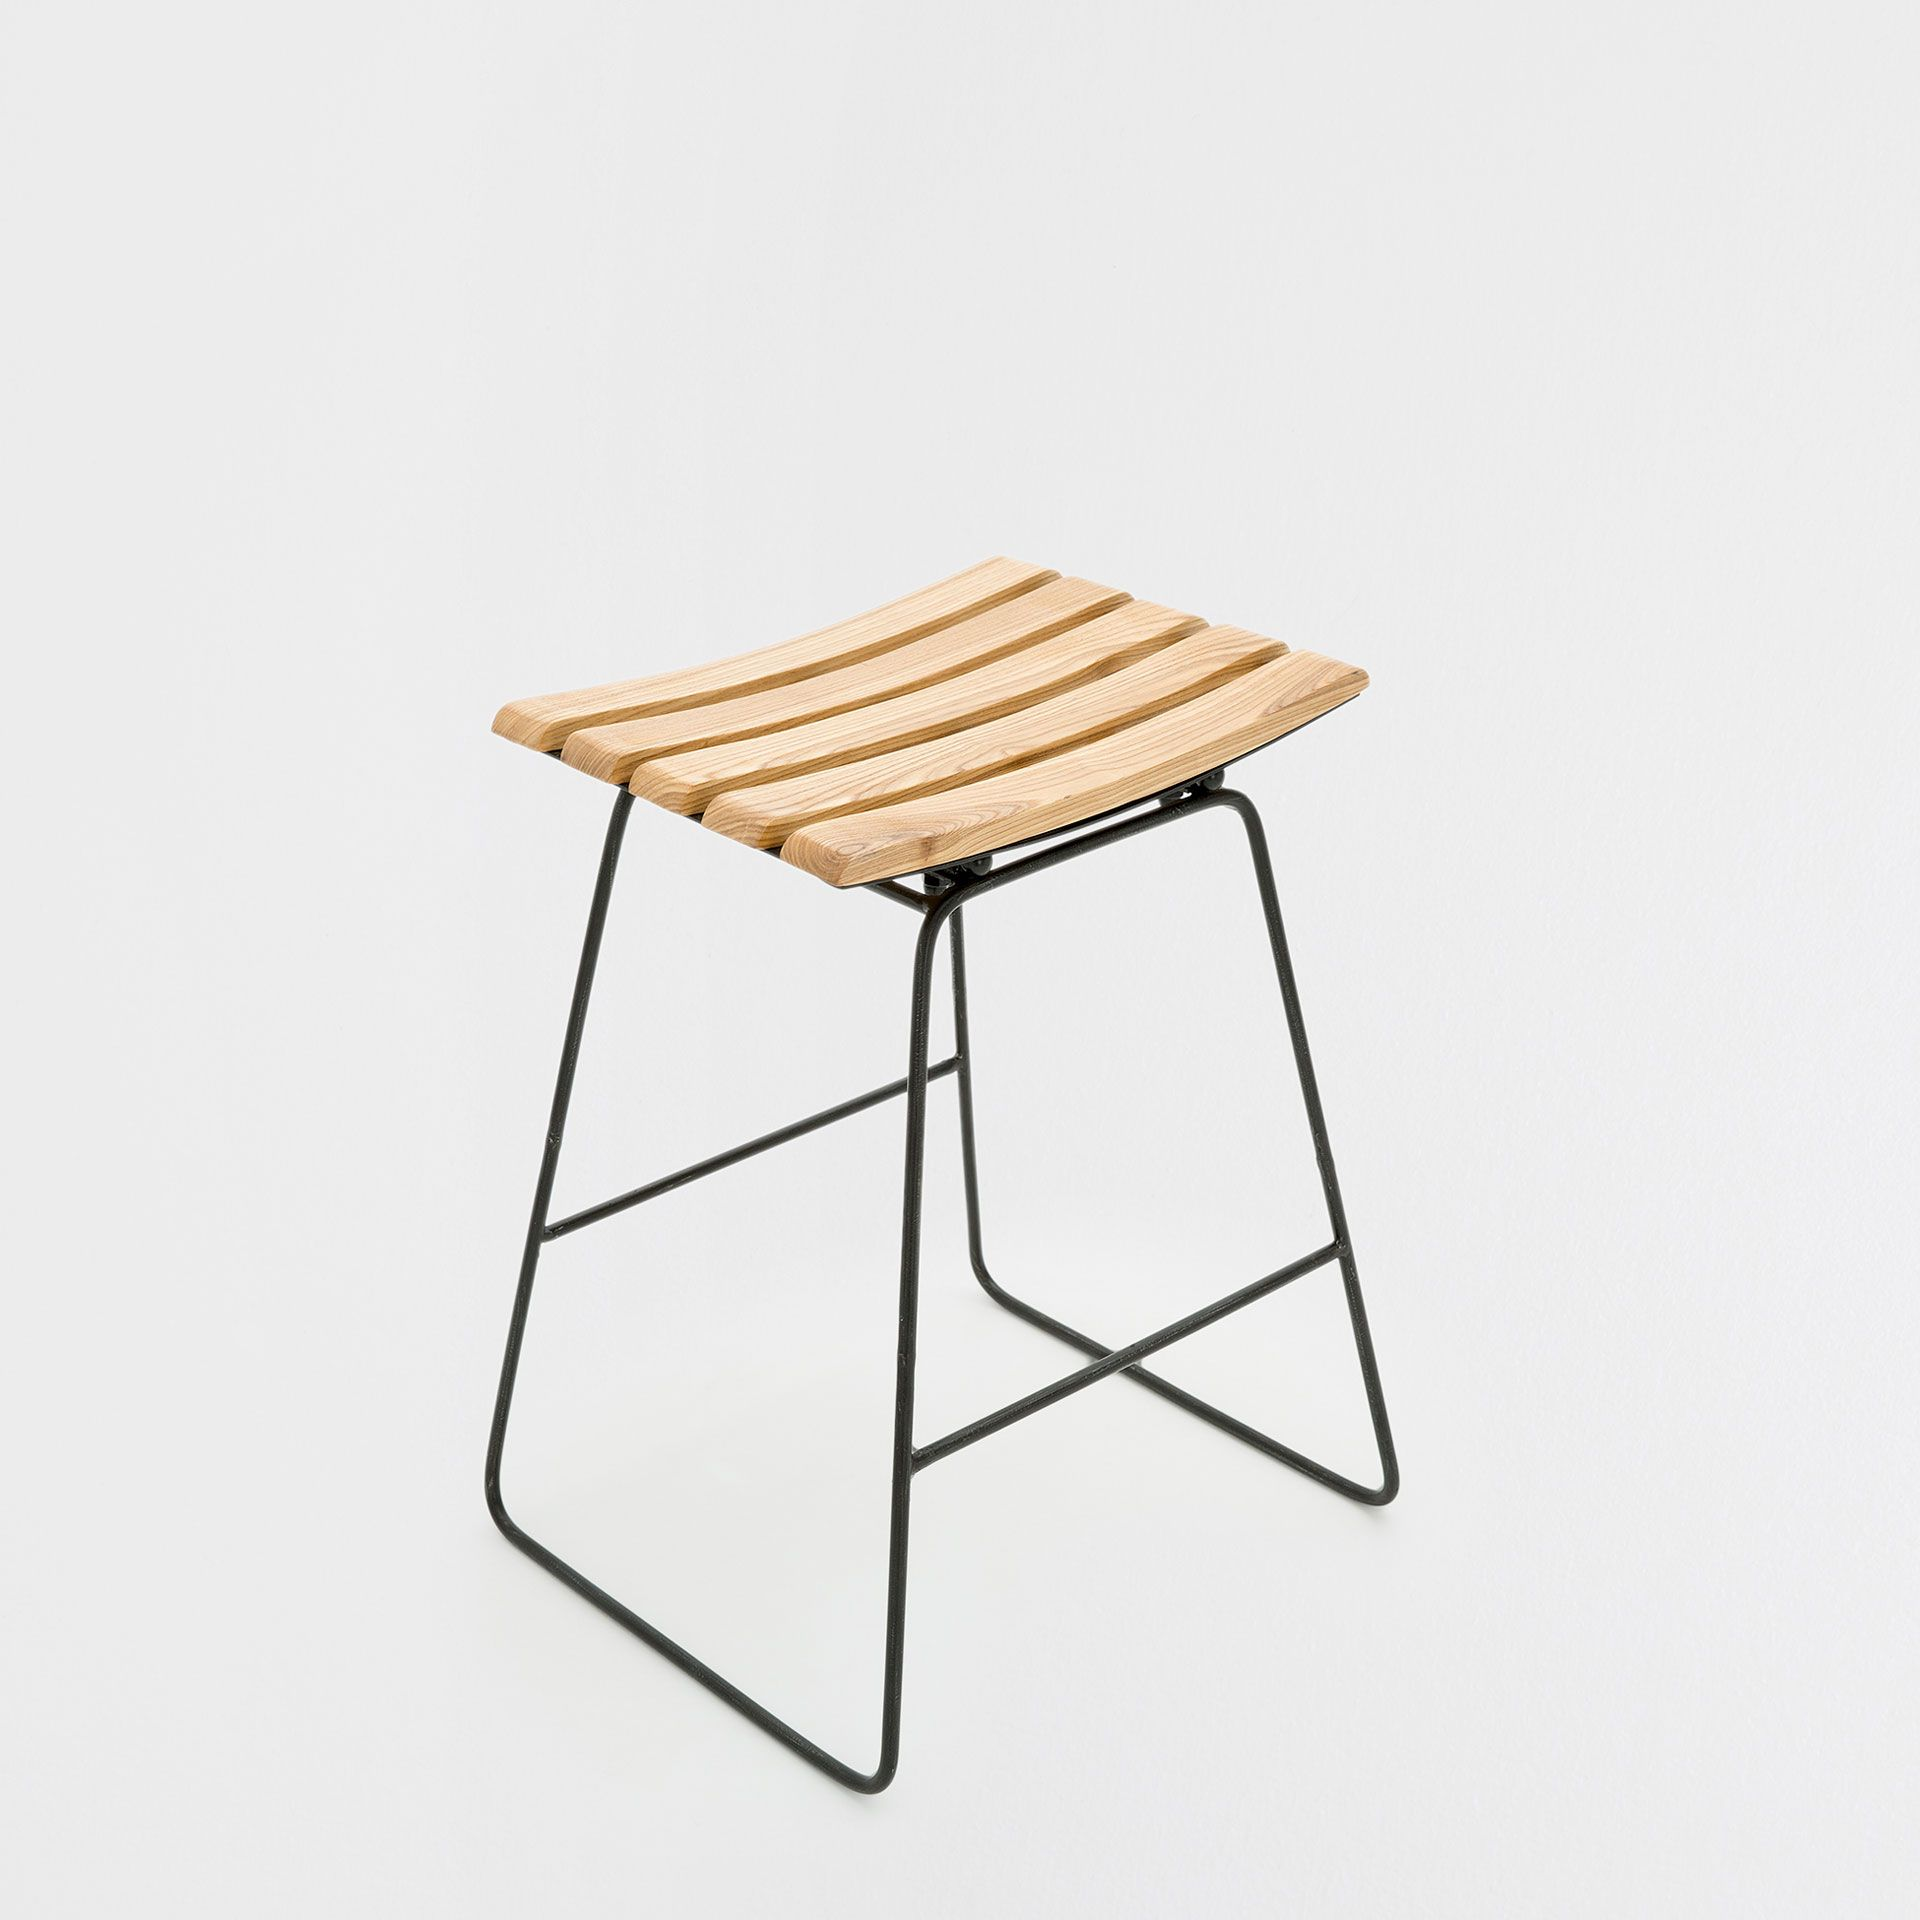 HIGH STOOL WITH A WOODEN SEAT - Occasional Furniture - Decoration ...